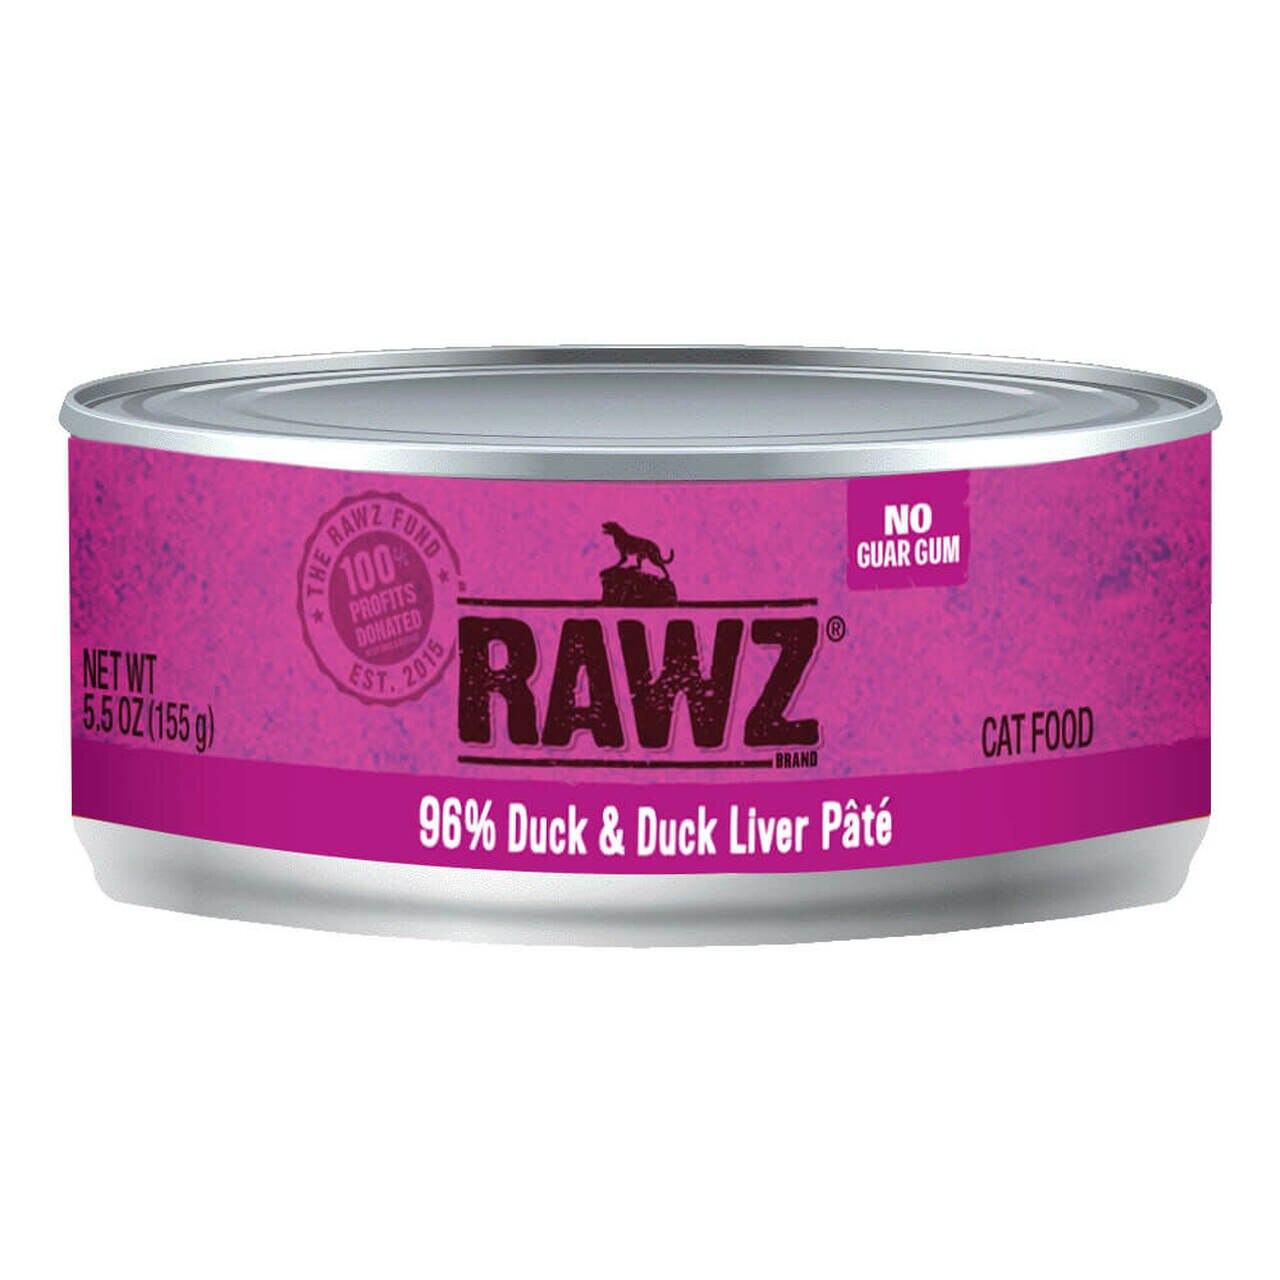 RAWZ 96% Duck & Duck Liver Pate Canned Cat Food 5.5 oz./24